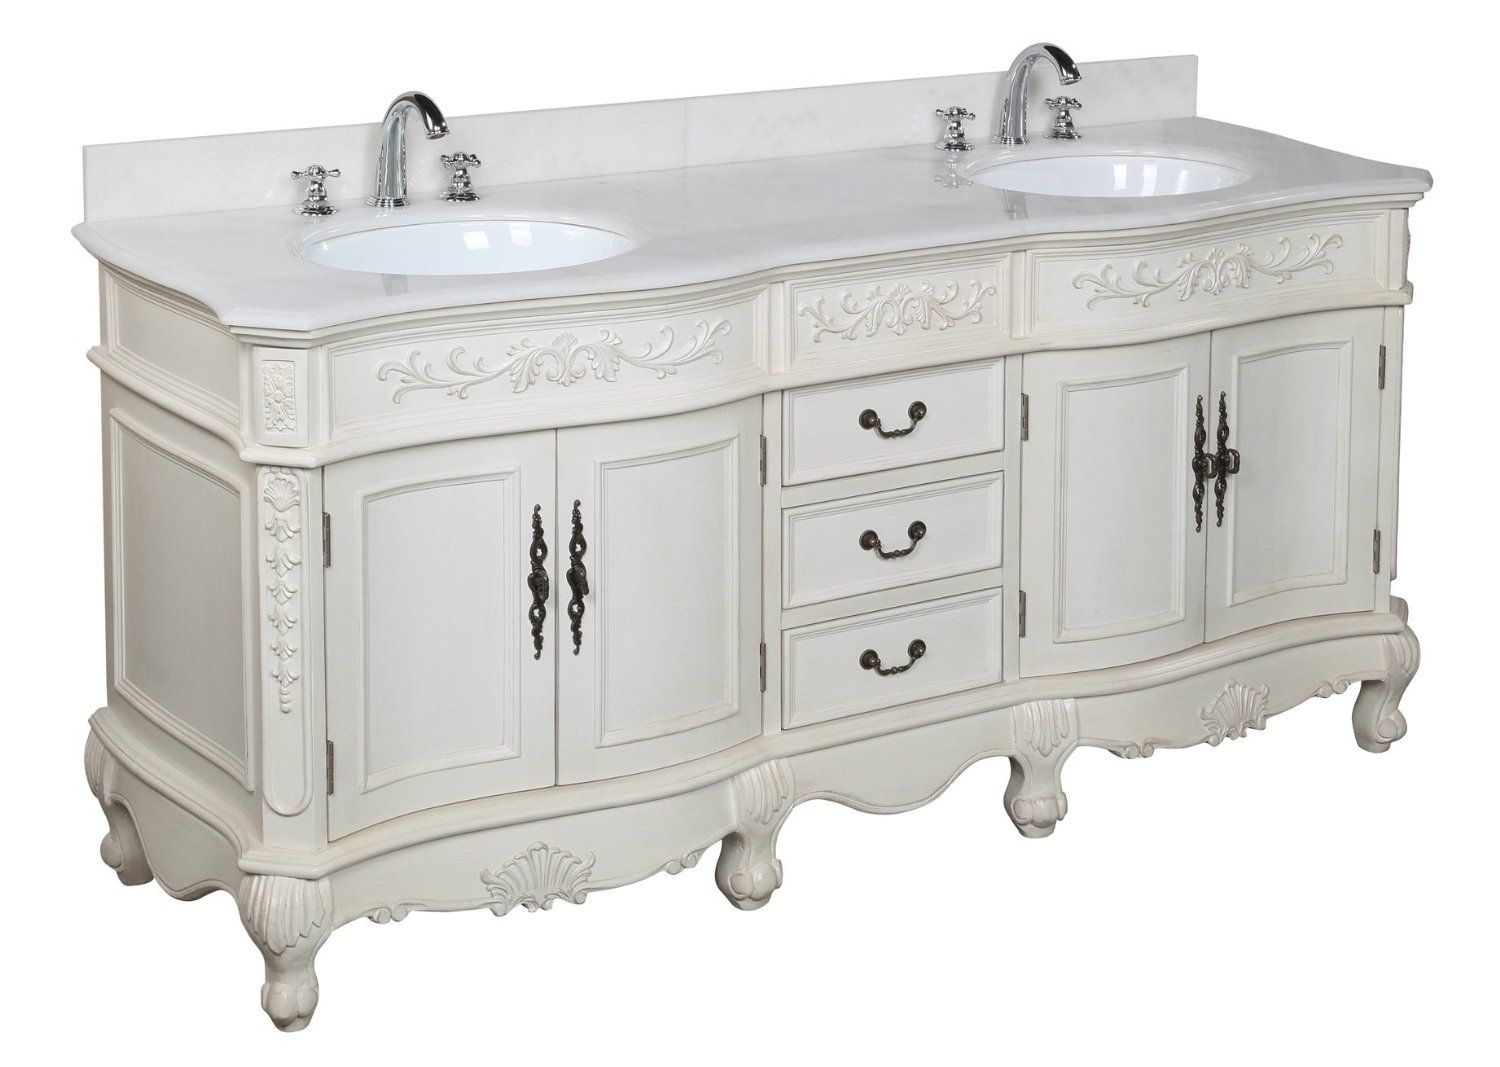 versailles 72-inch bathroom vanity with marble counter, sinks and